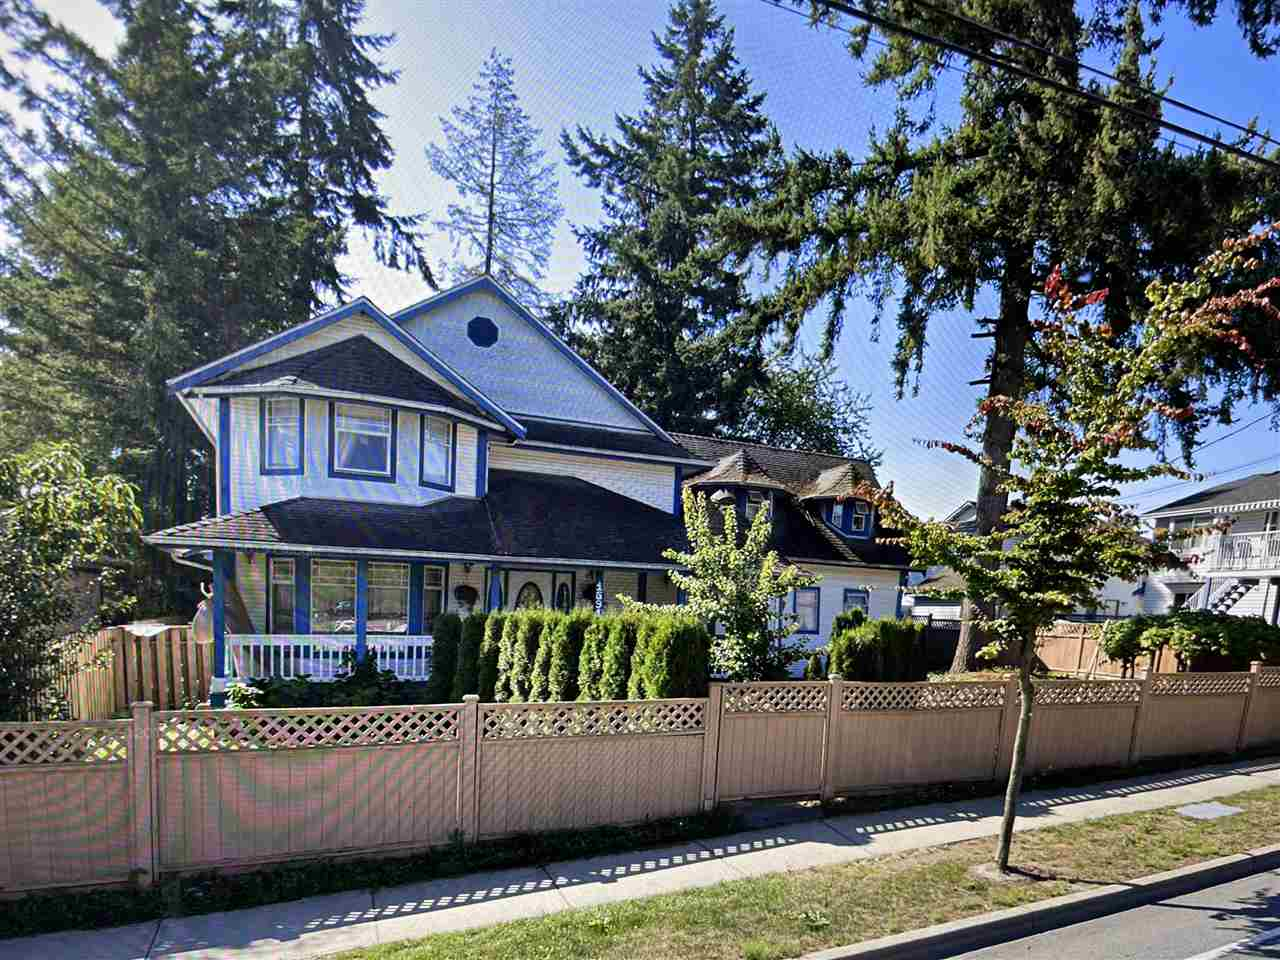 15914 96 AVENUE - Fleetwood Tynehead House/Single Family for sale, 6 Bedrooms (R2529984)